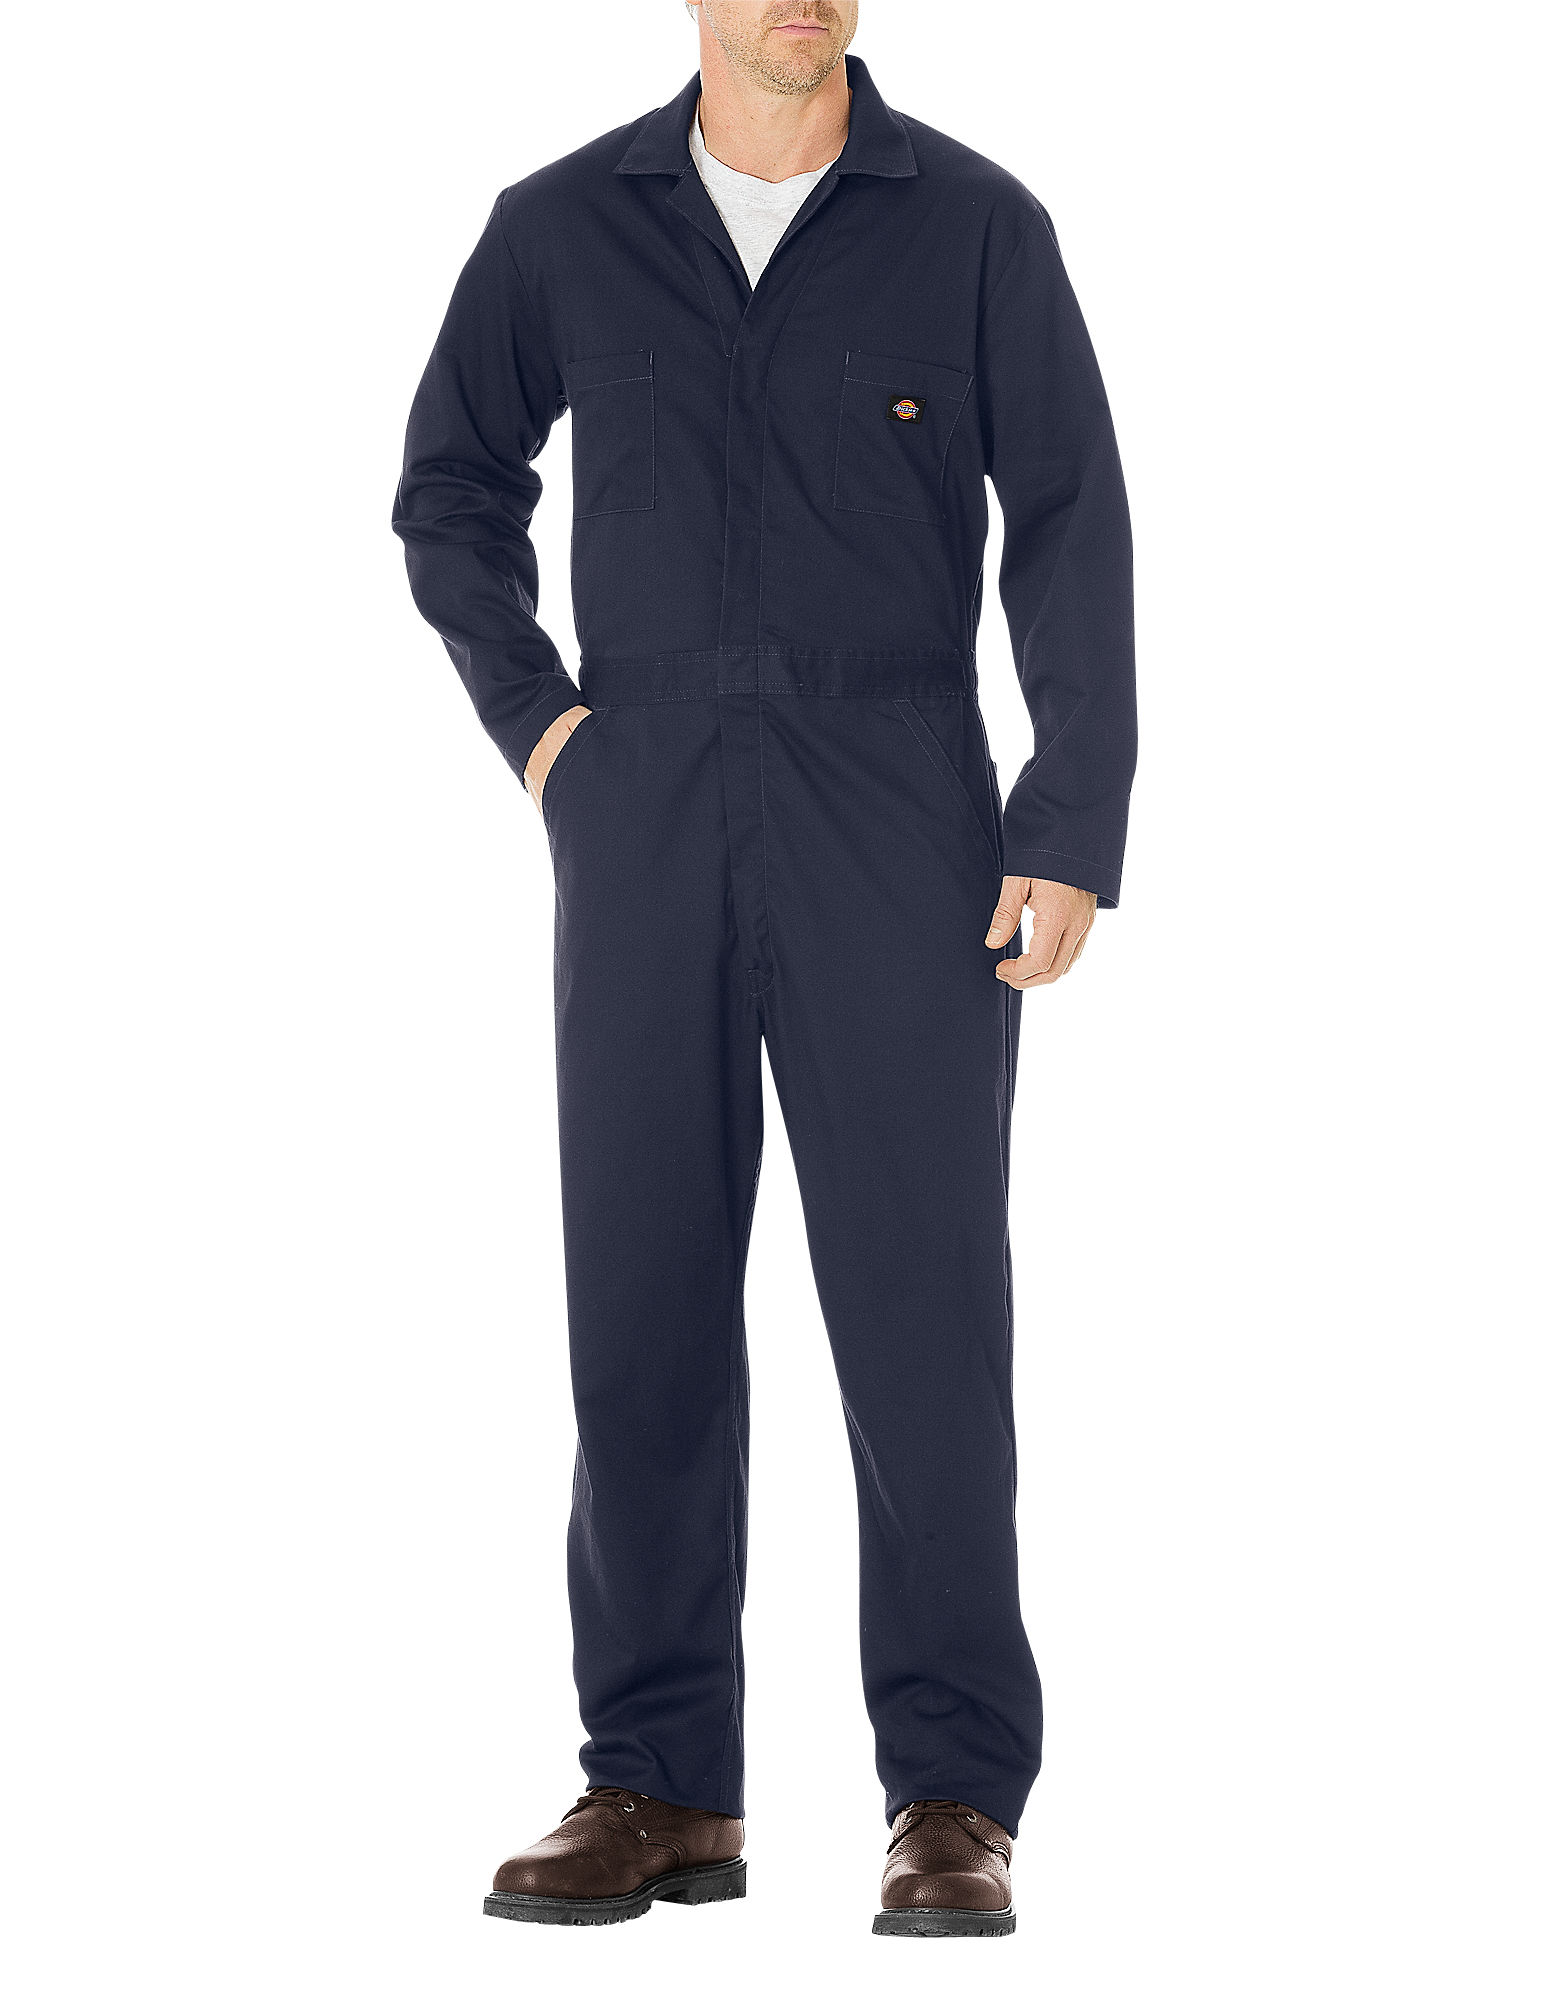 Dickies Mens Basic Cotton Coverall, Dark Navy 3X TL by Dickies